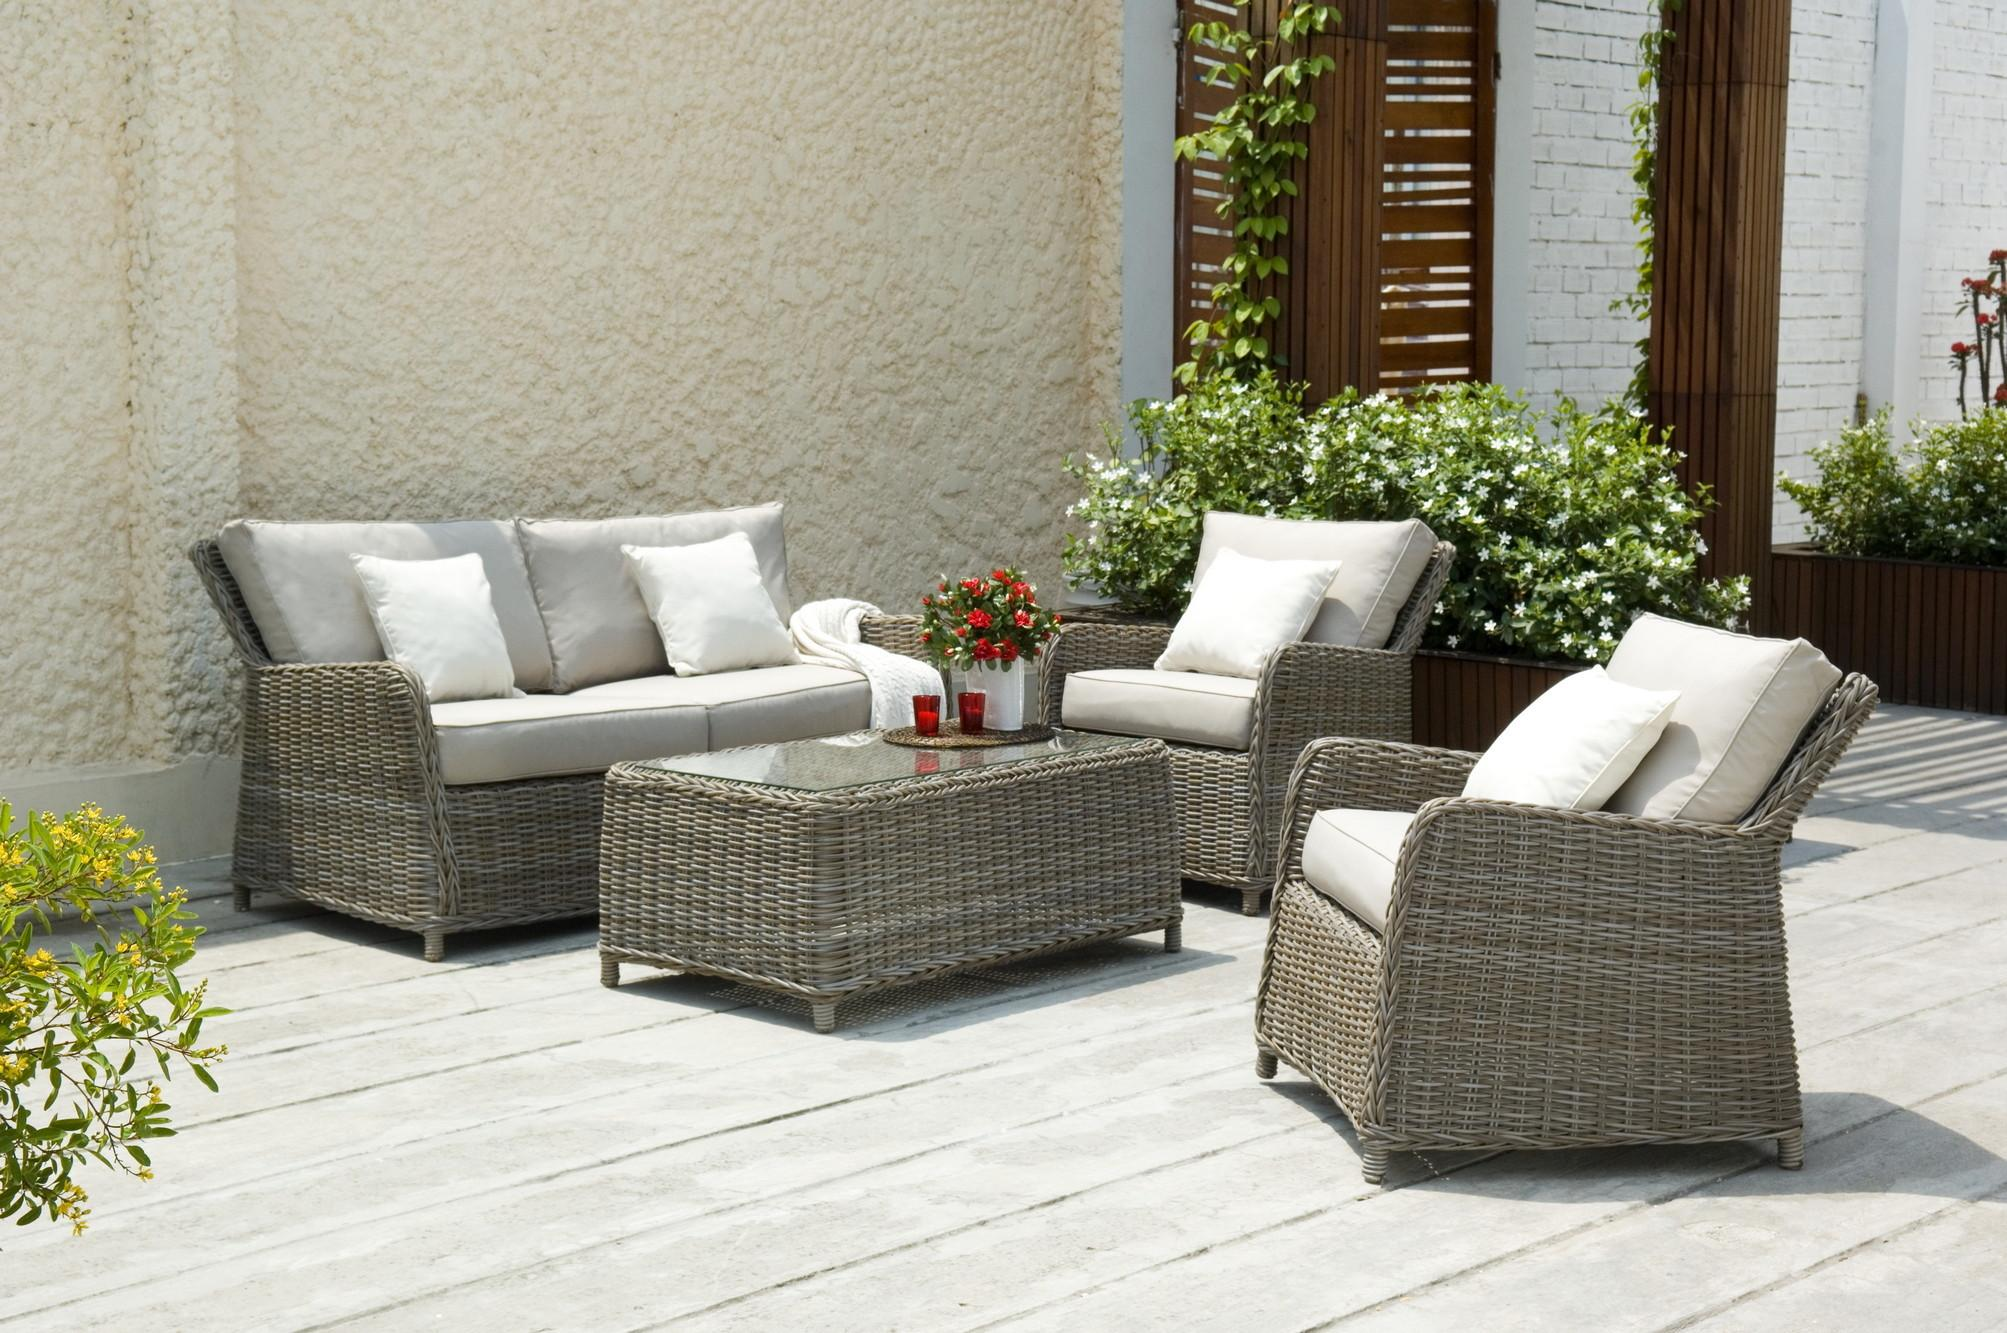 Buy Best Rattan Garden Furniture Out